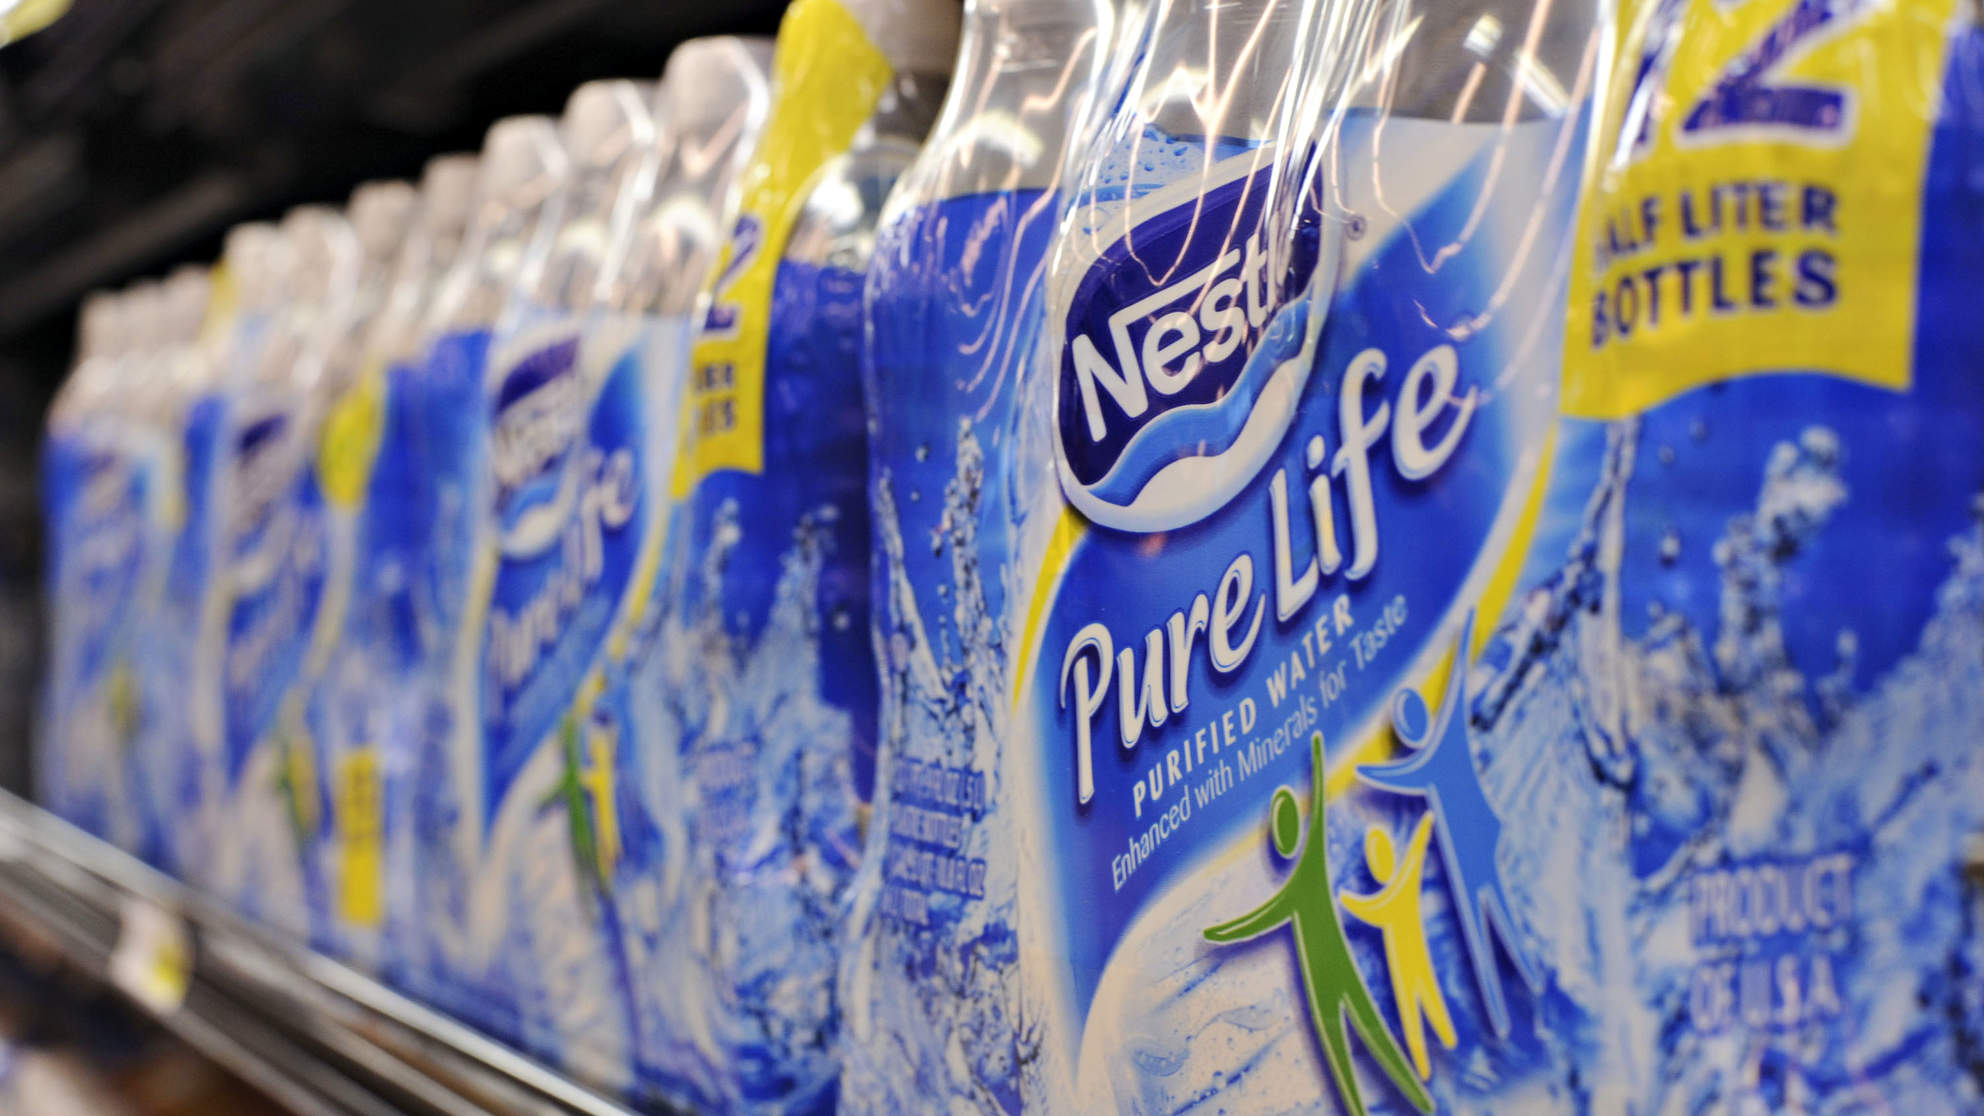 Bottles of Nestle Pure Life water sit on a market shelf in N